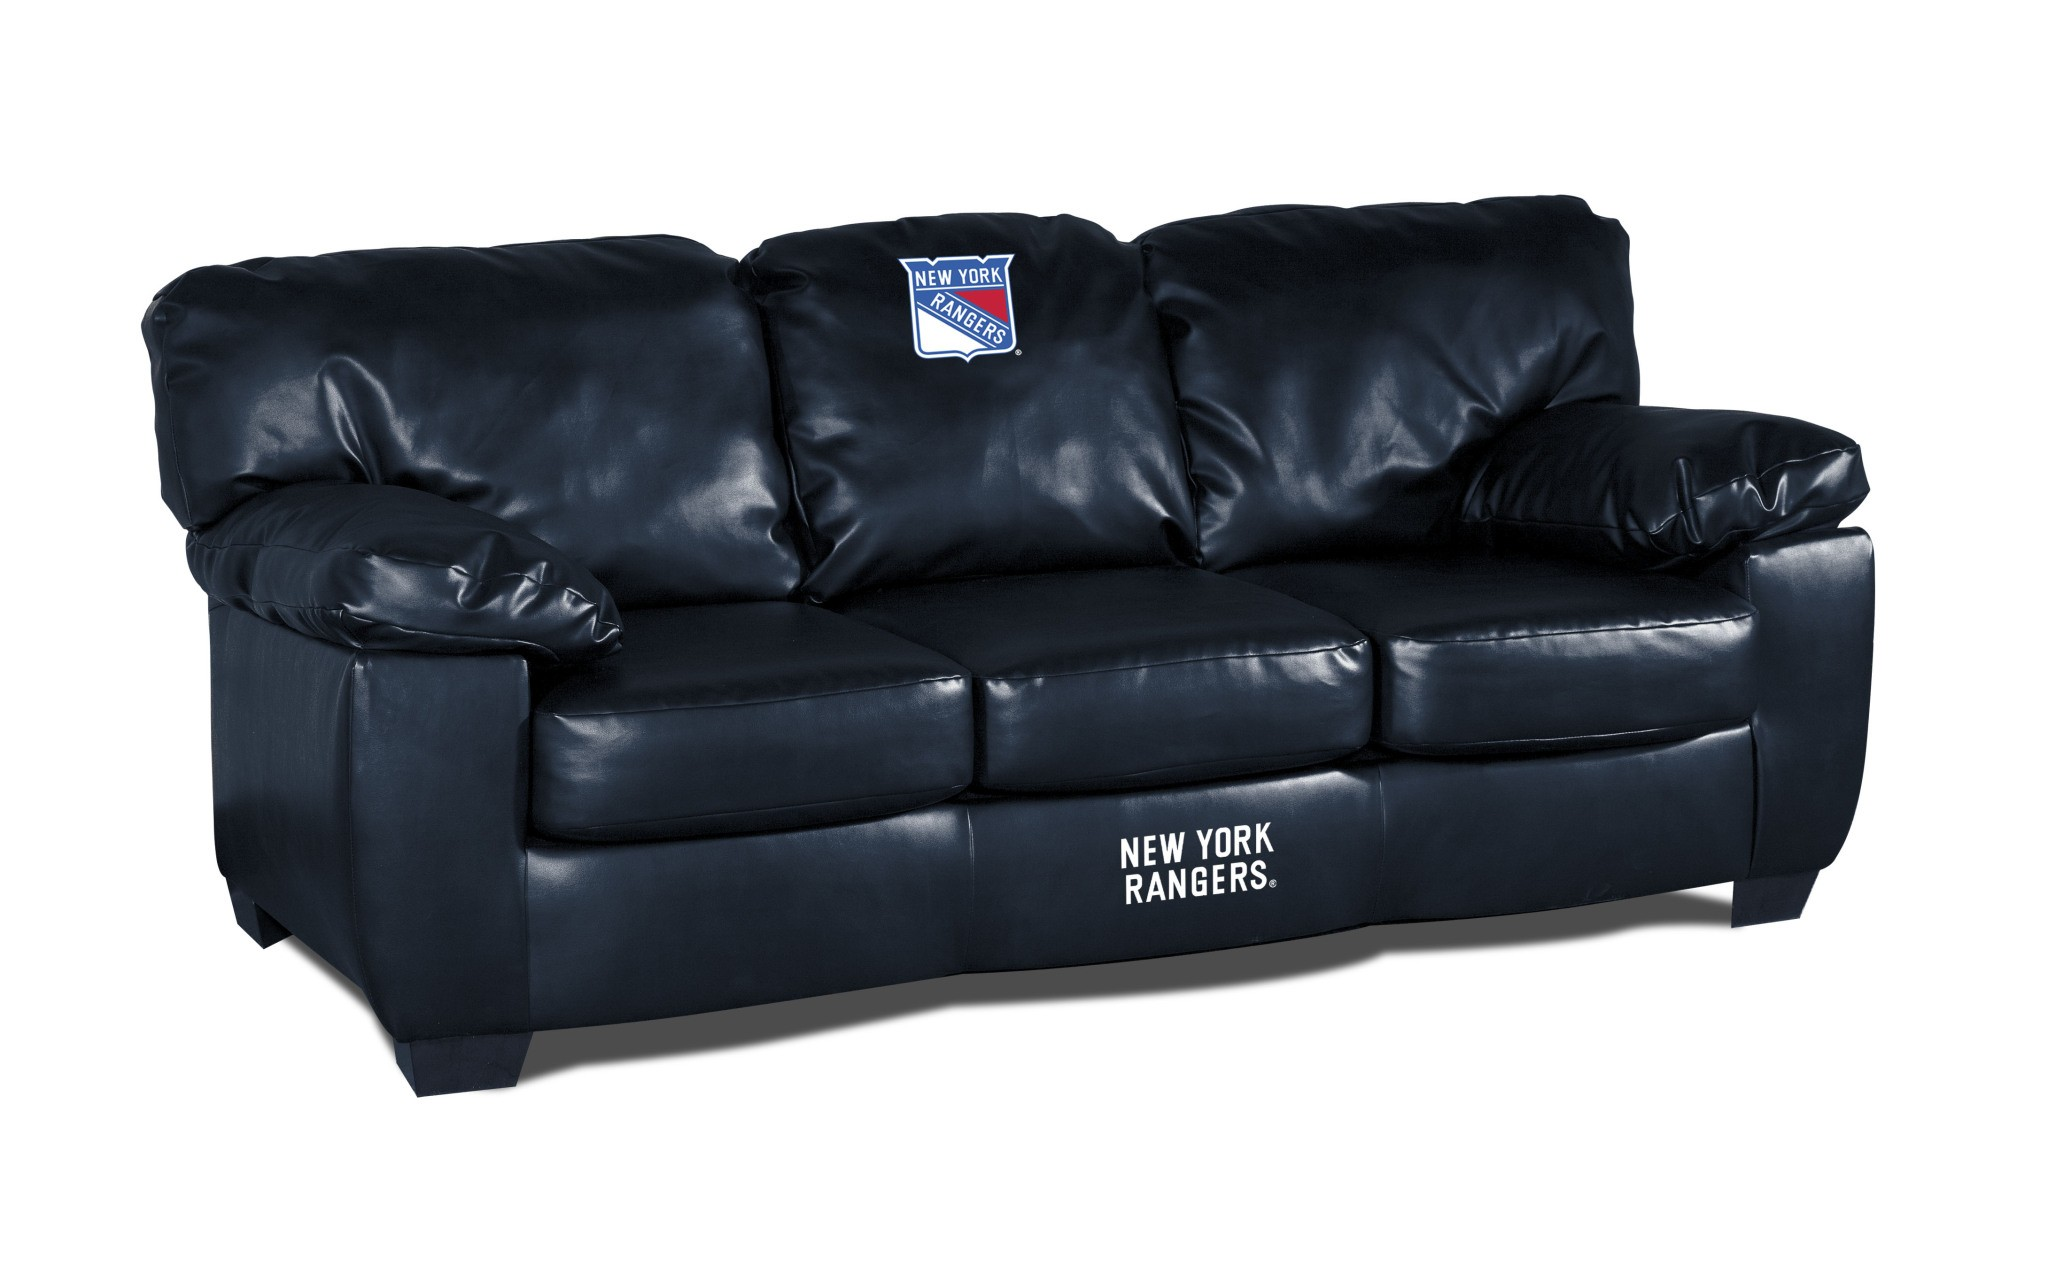 Nhl Clic Leather Sofa